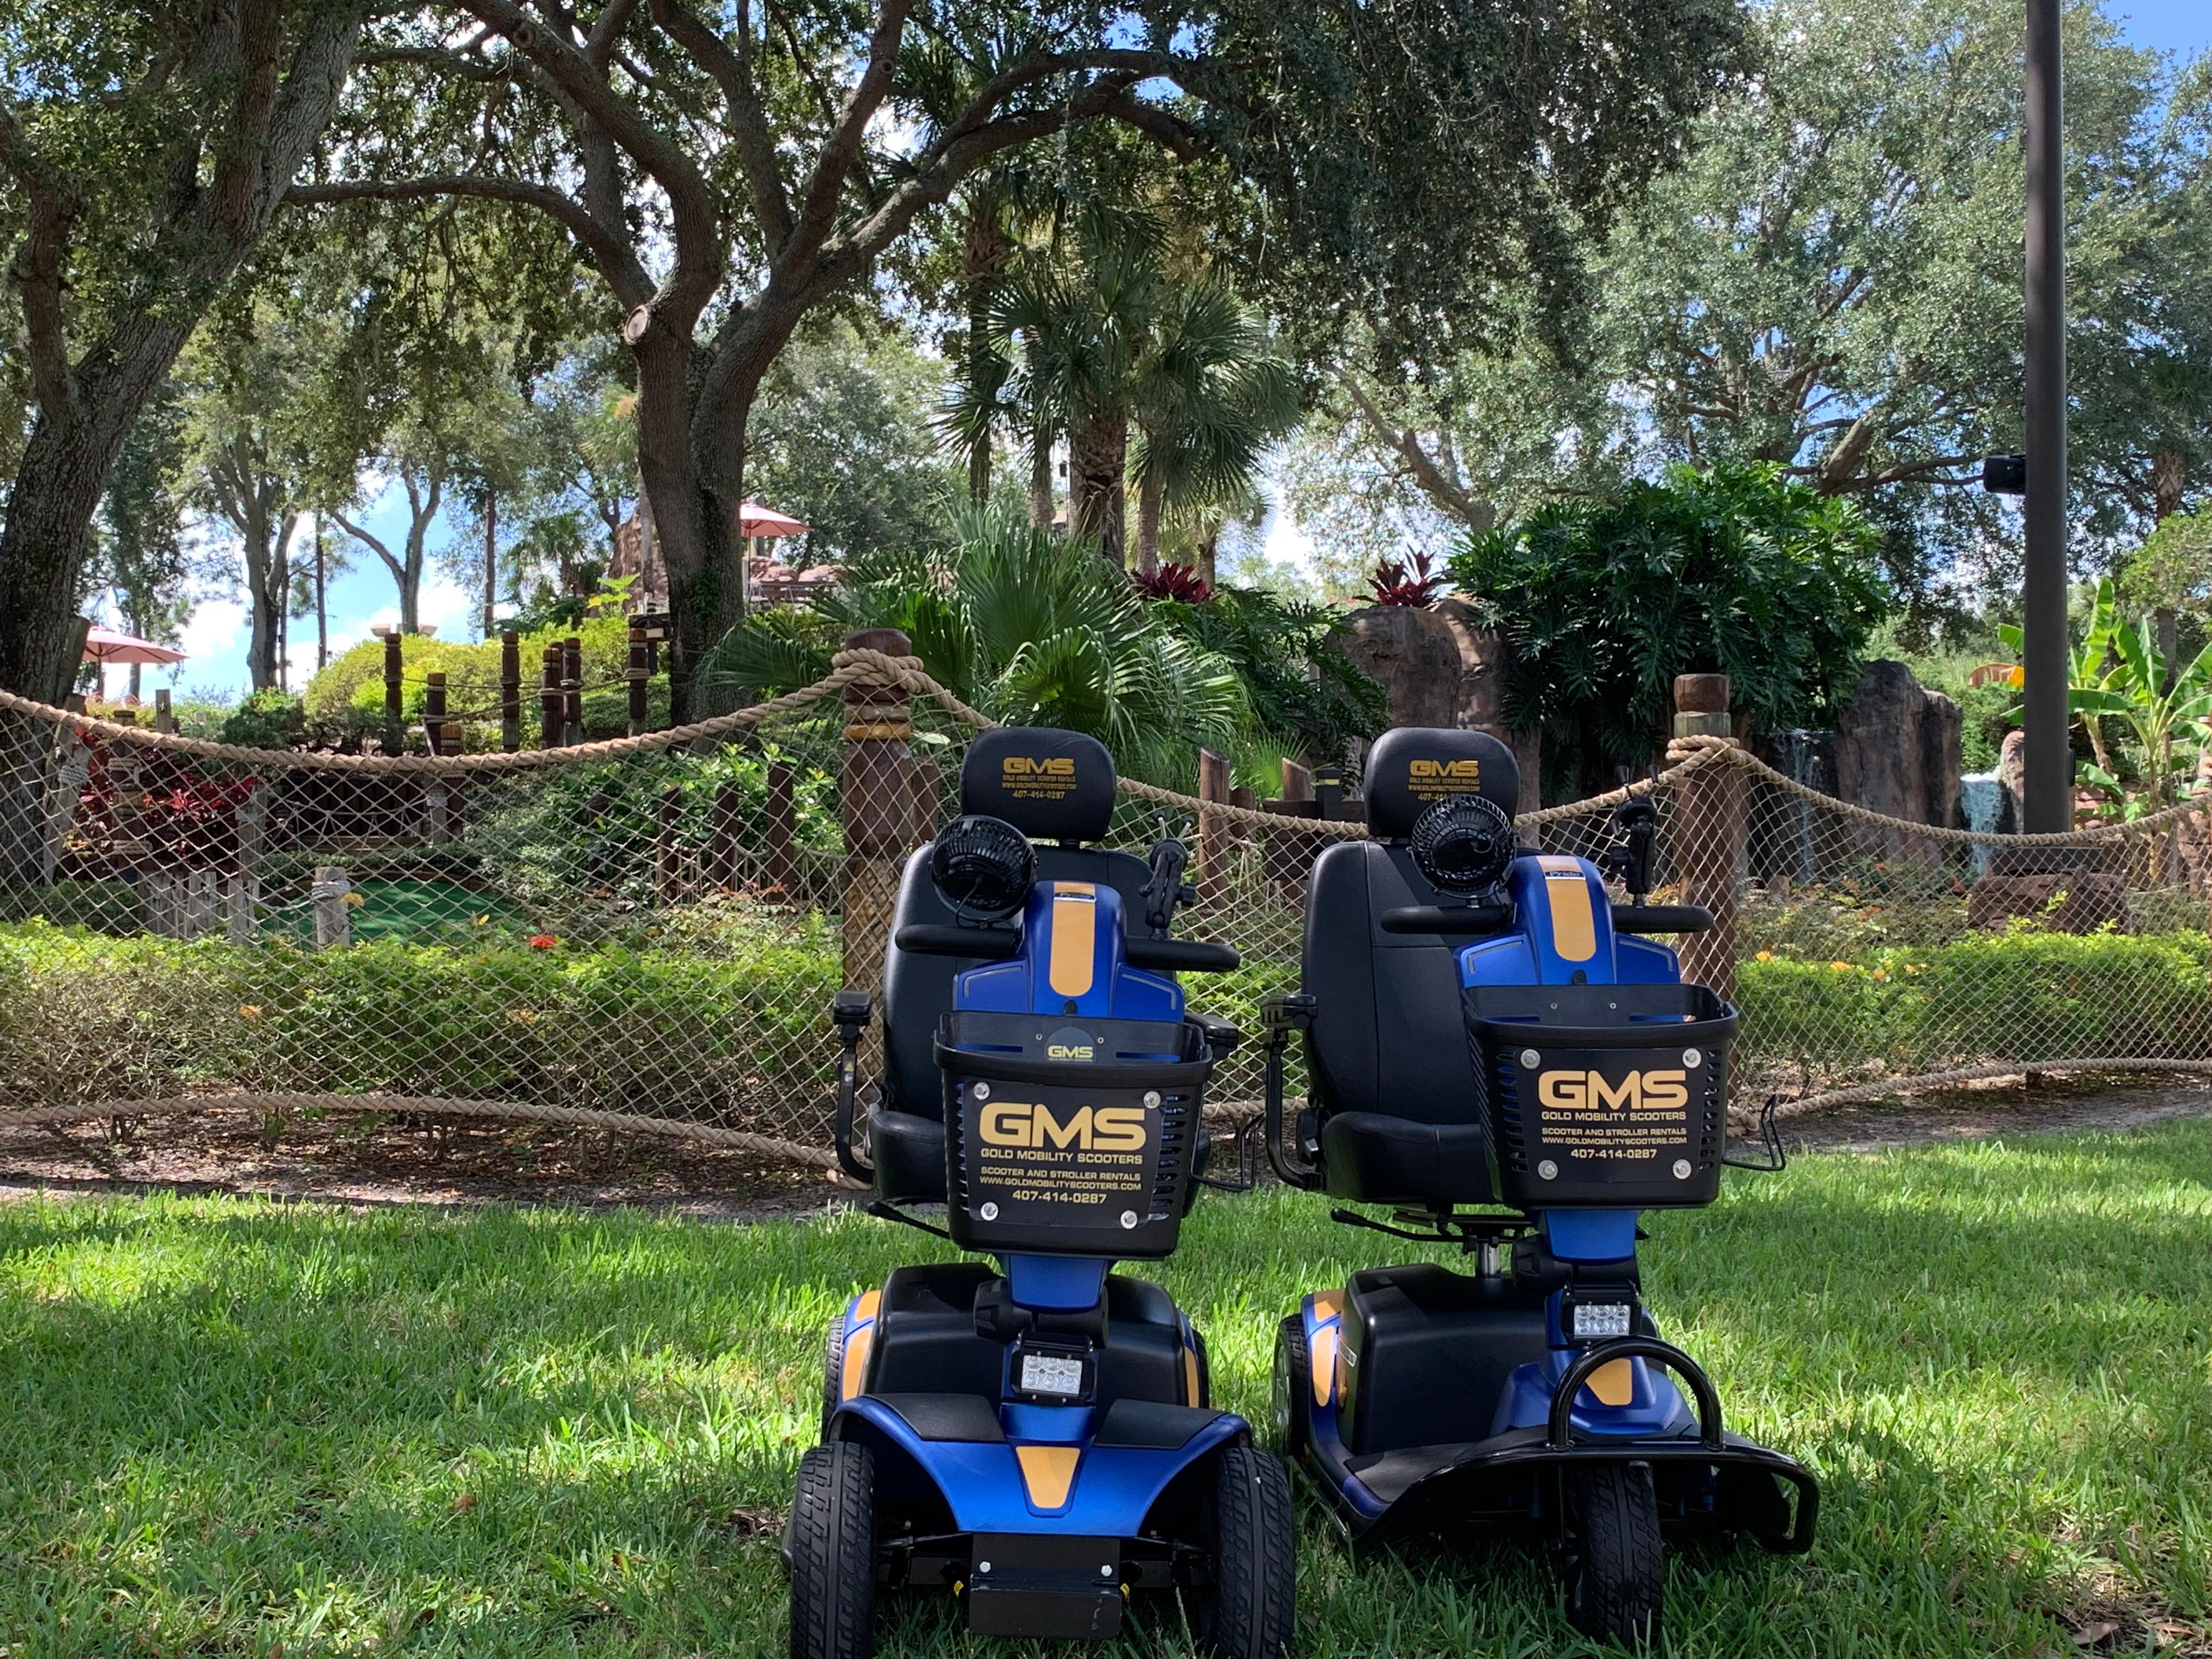 Approved scooter rentals for Orlando Florida and the theme parks by Gold Mobility Scooters. We sell and rent top of the line Pride Mobility Scooters in our rent a scooter line. Theme Parks and Orlando Florida Area scooter rentals. Best rental Prices, Premium brand new scooters for rent, Free Delivery and Pickup, Free Damage Waver, Free Accessories, and Custom upgrades. 5 star rated scooter rental company. Scooter Rental info at https://goldmobilityscooters.com or Call us at 407-414-0287